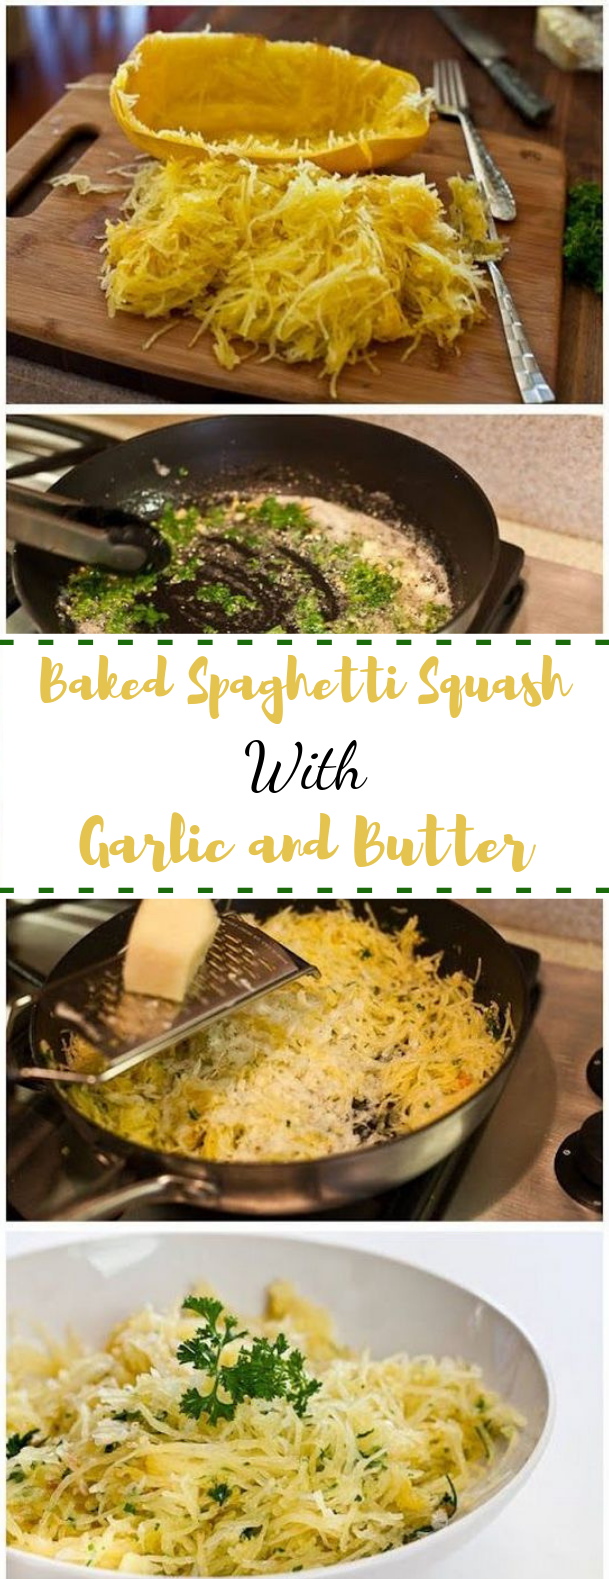 Baked Spaghetti Squash with Garlic and Butter #spaghetti #vegetarian